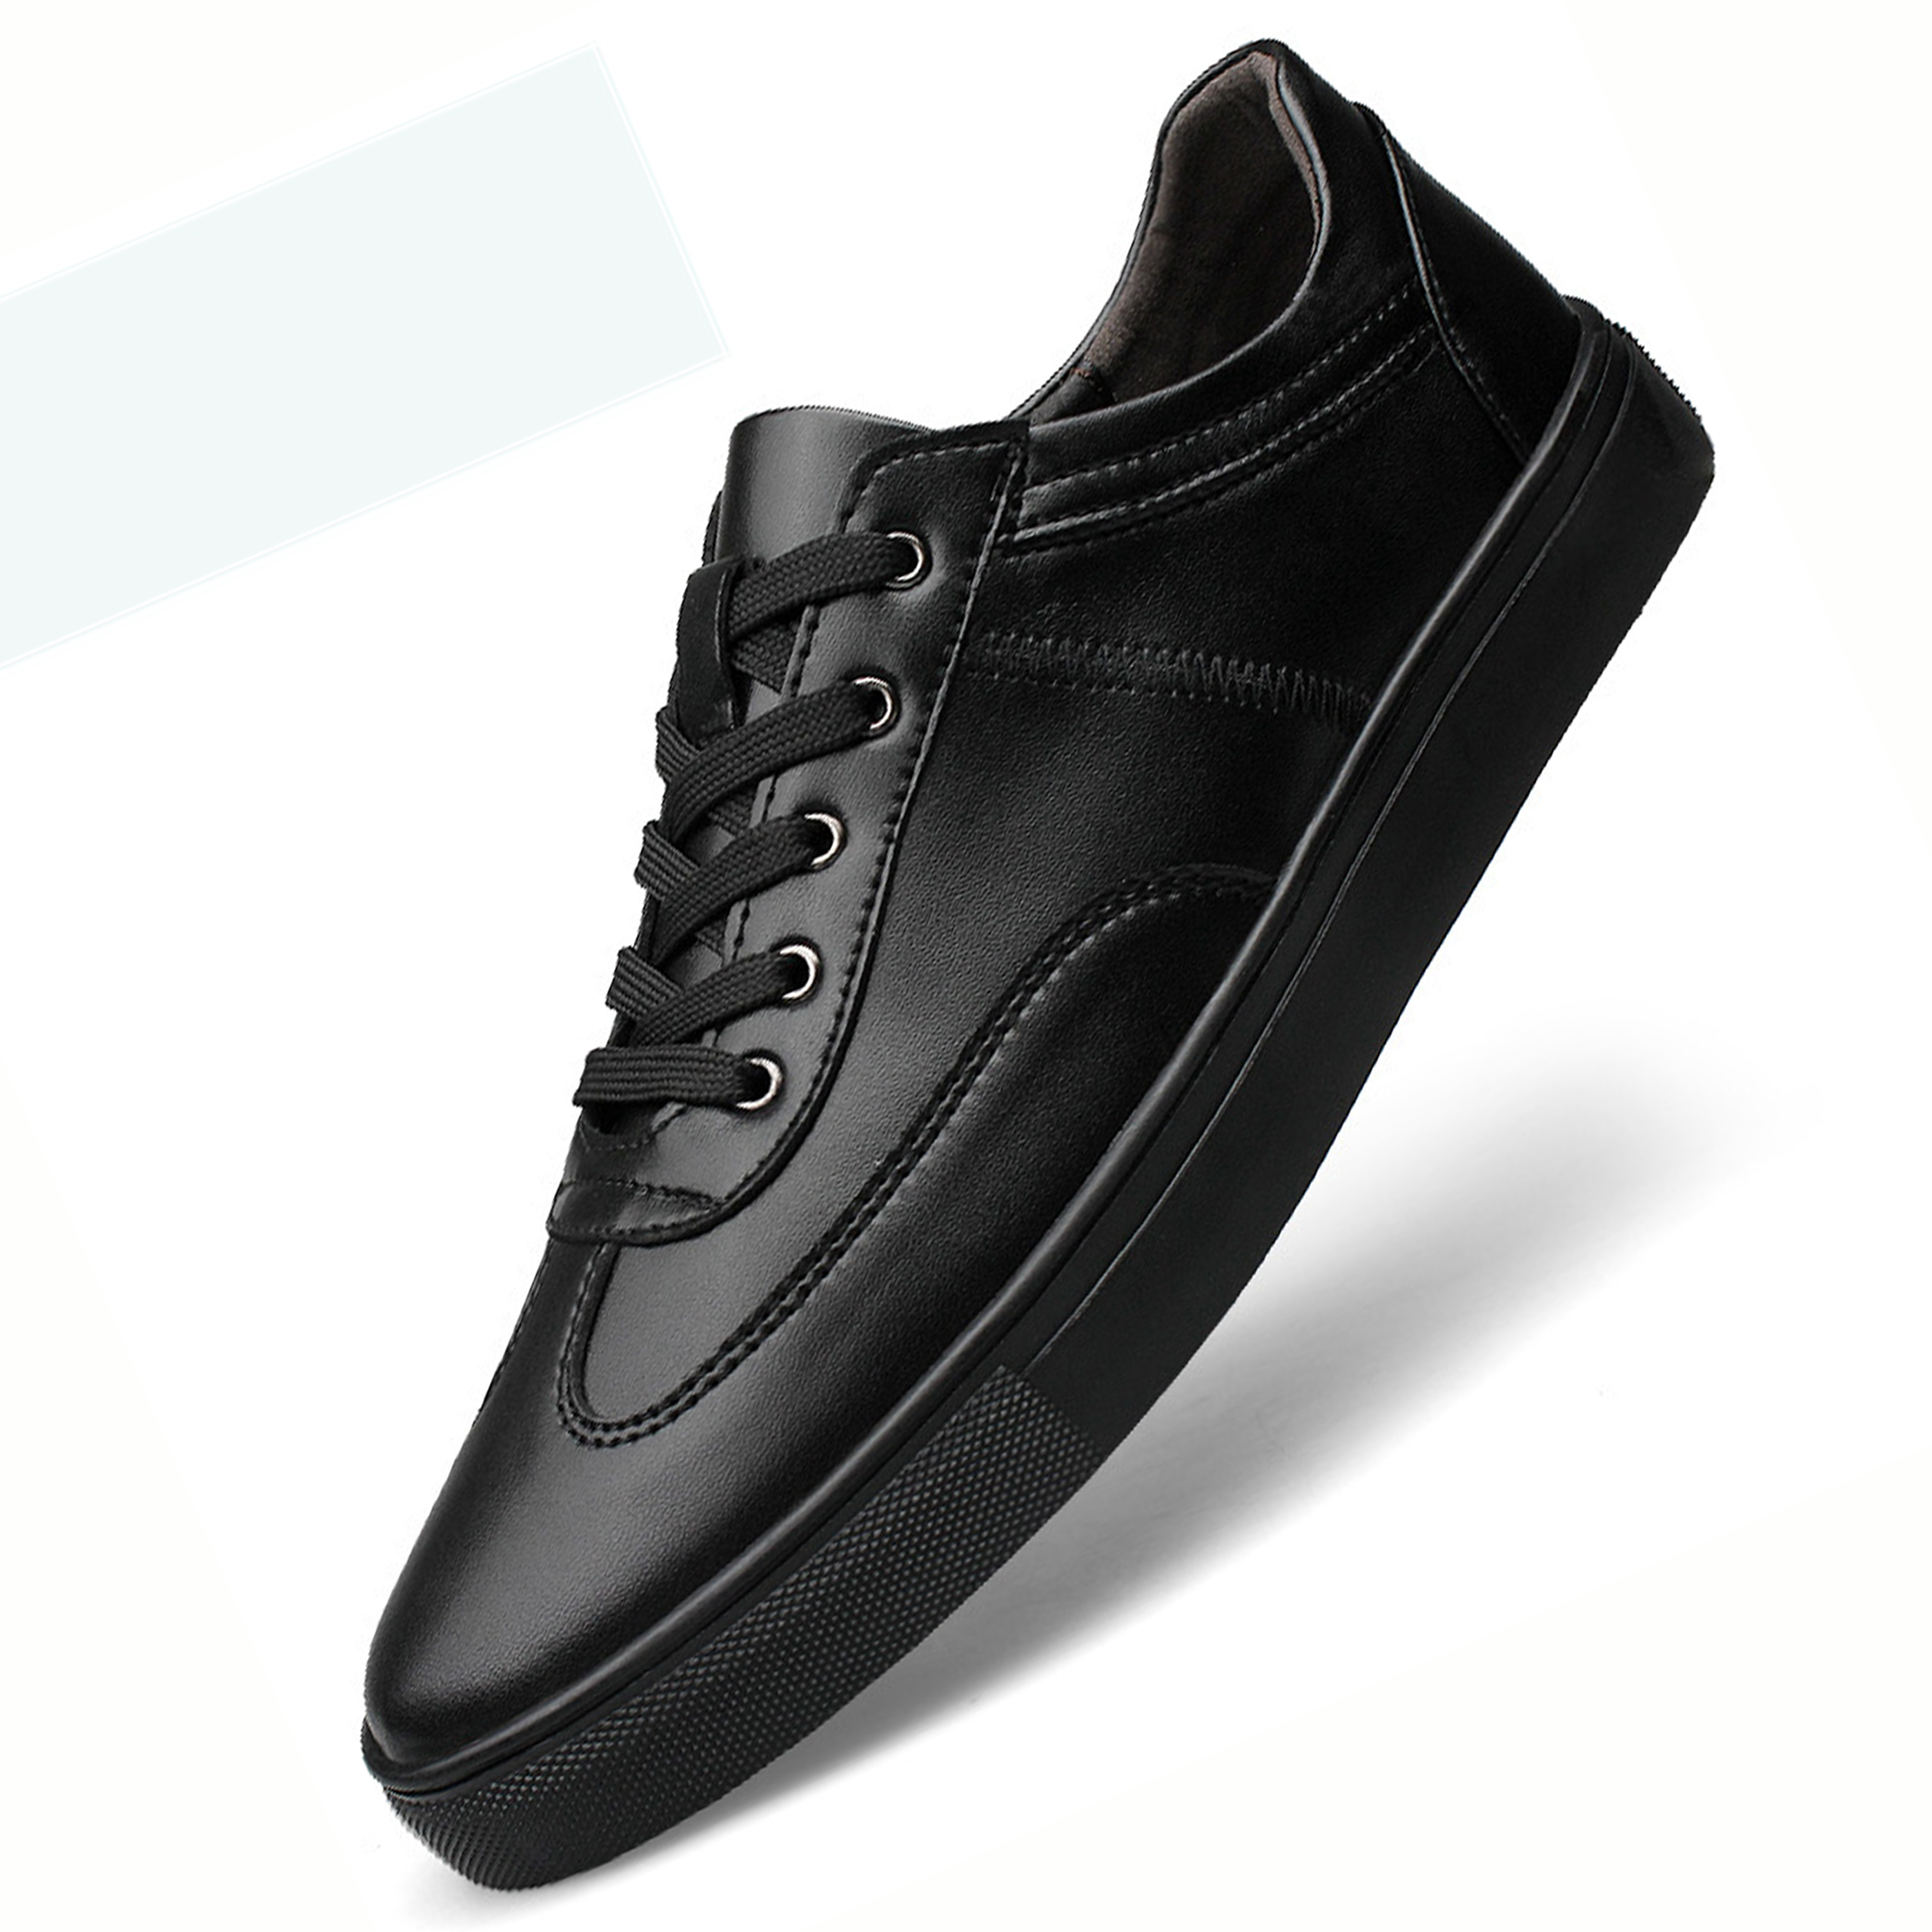 Hot Men Spring Autumn Shoes Men's Leather Shoes Black White Casual Lace Up Loafers Leather Men's Flats Oxford Shoes Big 35-49 new 2017 spring autumn flats men canvas shoes fashion mens casual shoes thick sole classic black white lace up brand th027